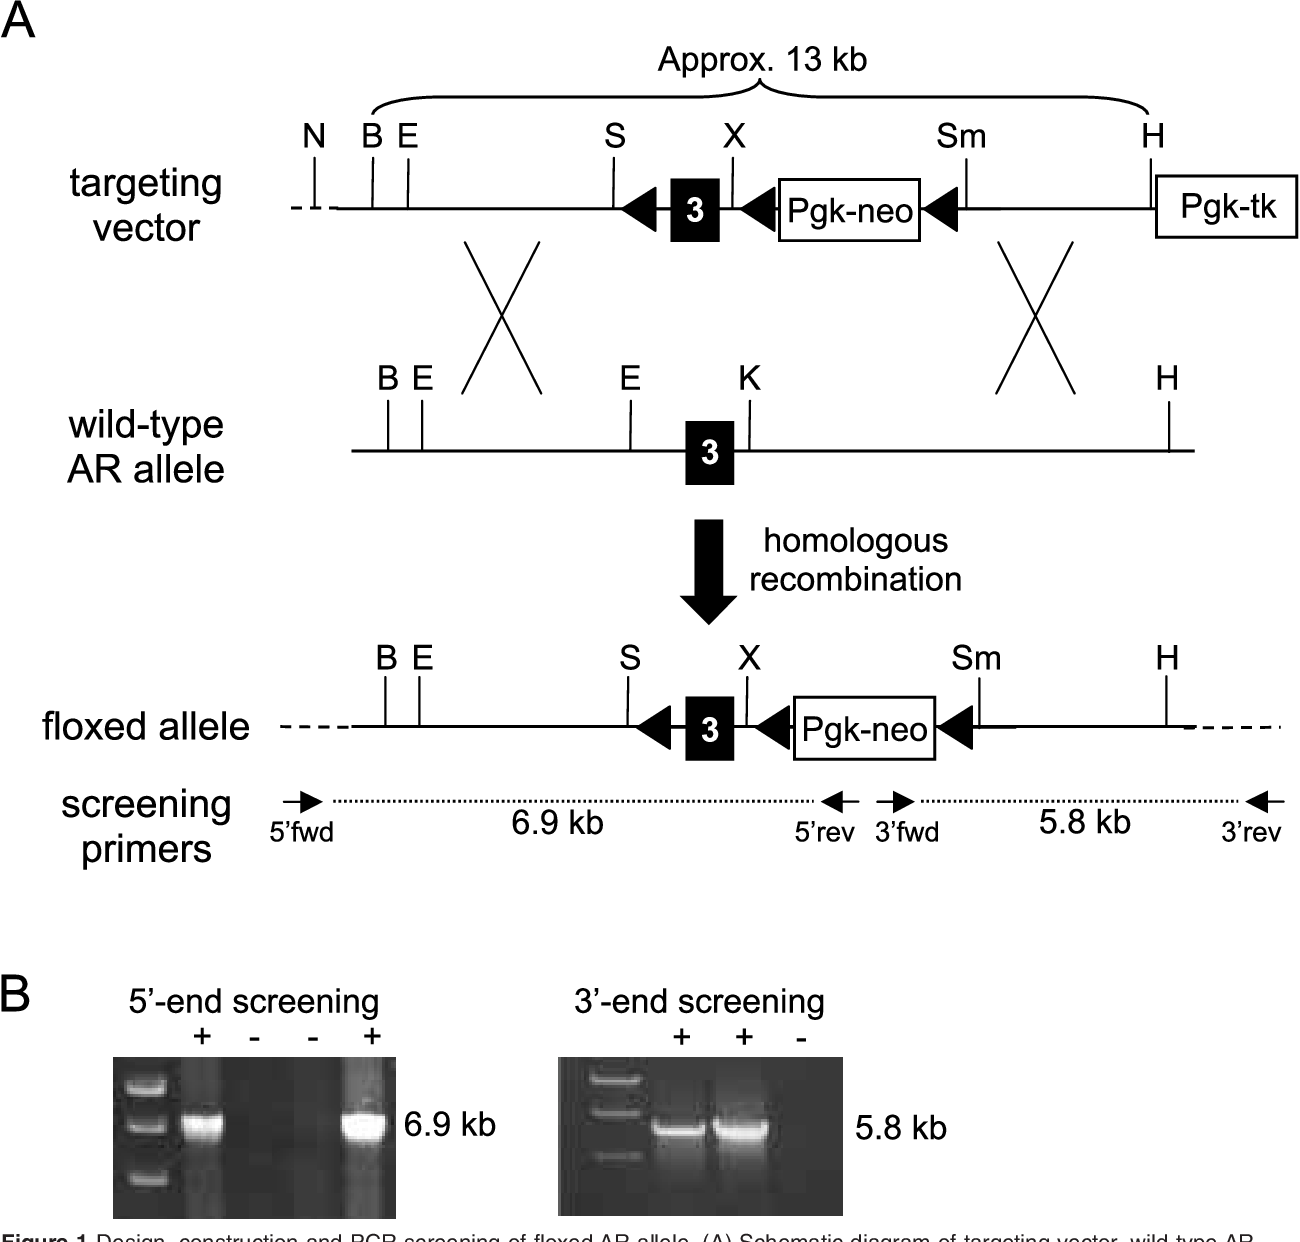 Figure 1 Design, construction and PCR screening of floxed AR allele. (A) Schematic diagram of targeting vector, wild-type AR and floxed AR alleles, showing primer pairs used to detect homologous recombination events. Each primer is represented as an arrow. LoxP sites and their orientation are indicated by black triangles. N, NotI; B, BamHI; E, EcoRI; S, SalI; X, XhoI; Sm, SmaI; H, HindIII; K, KpnI. (B) Agarose gel electrophoresis of PCR products using 58- and 38-end homologous recombination screening primers. +, exon 3 targeted embryonic stem (ES) cell clone; –, wild-type ES cell clone.